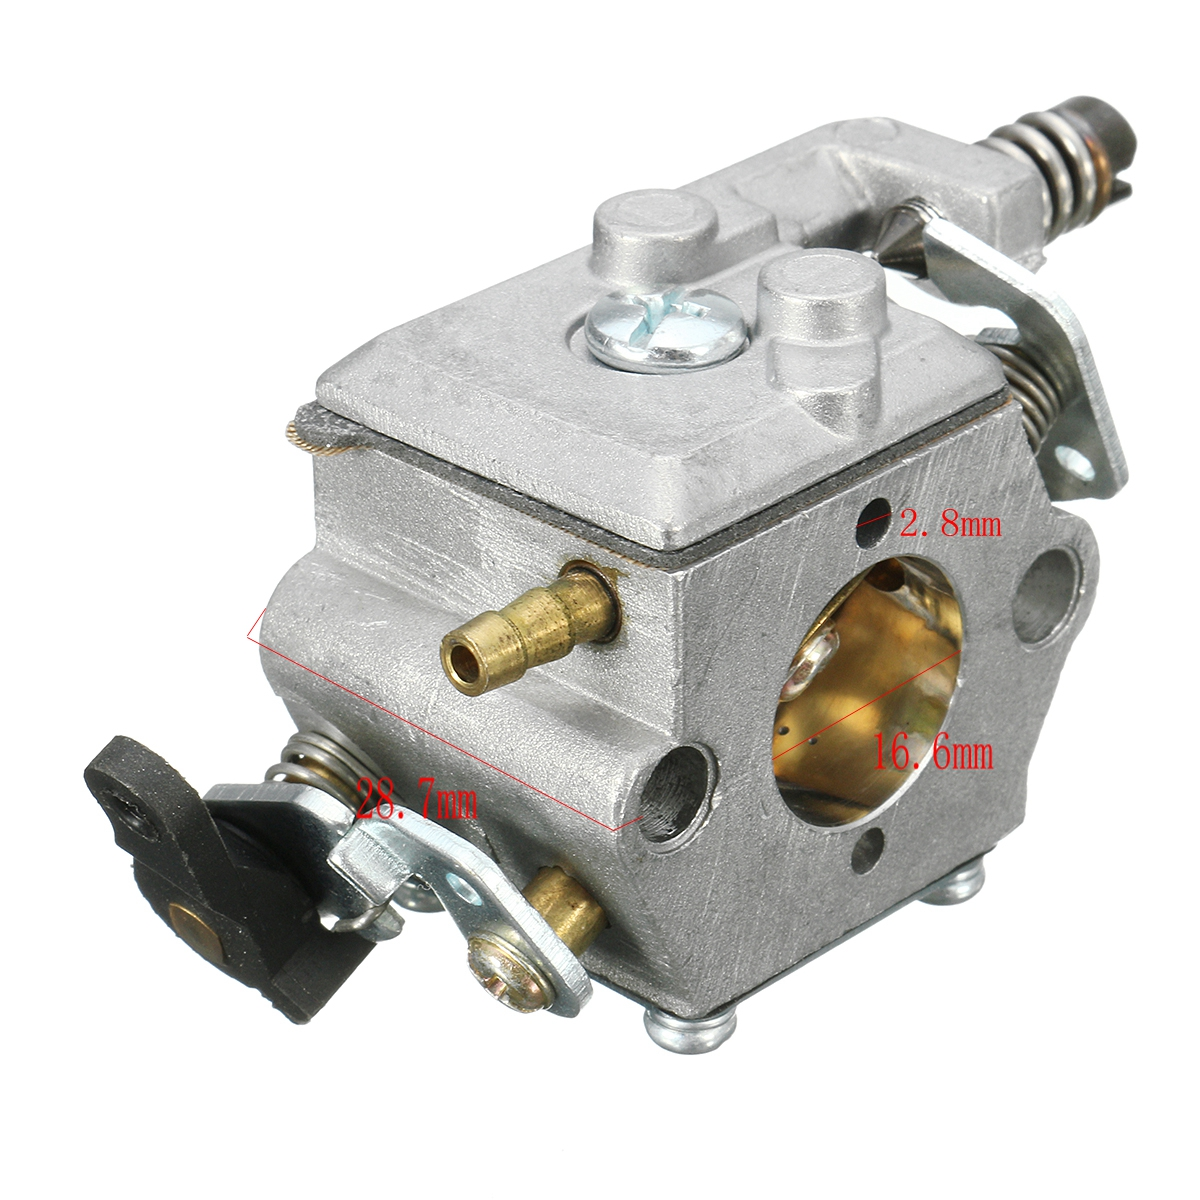 hight resolution of carburetor with fuel filter for husqvarna 51 55 chain saw 503281504 walbro wt 170